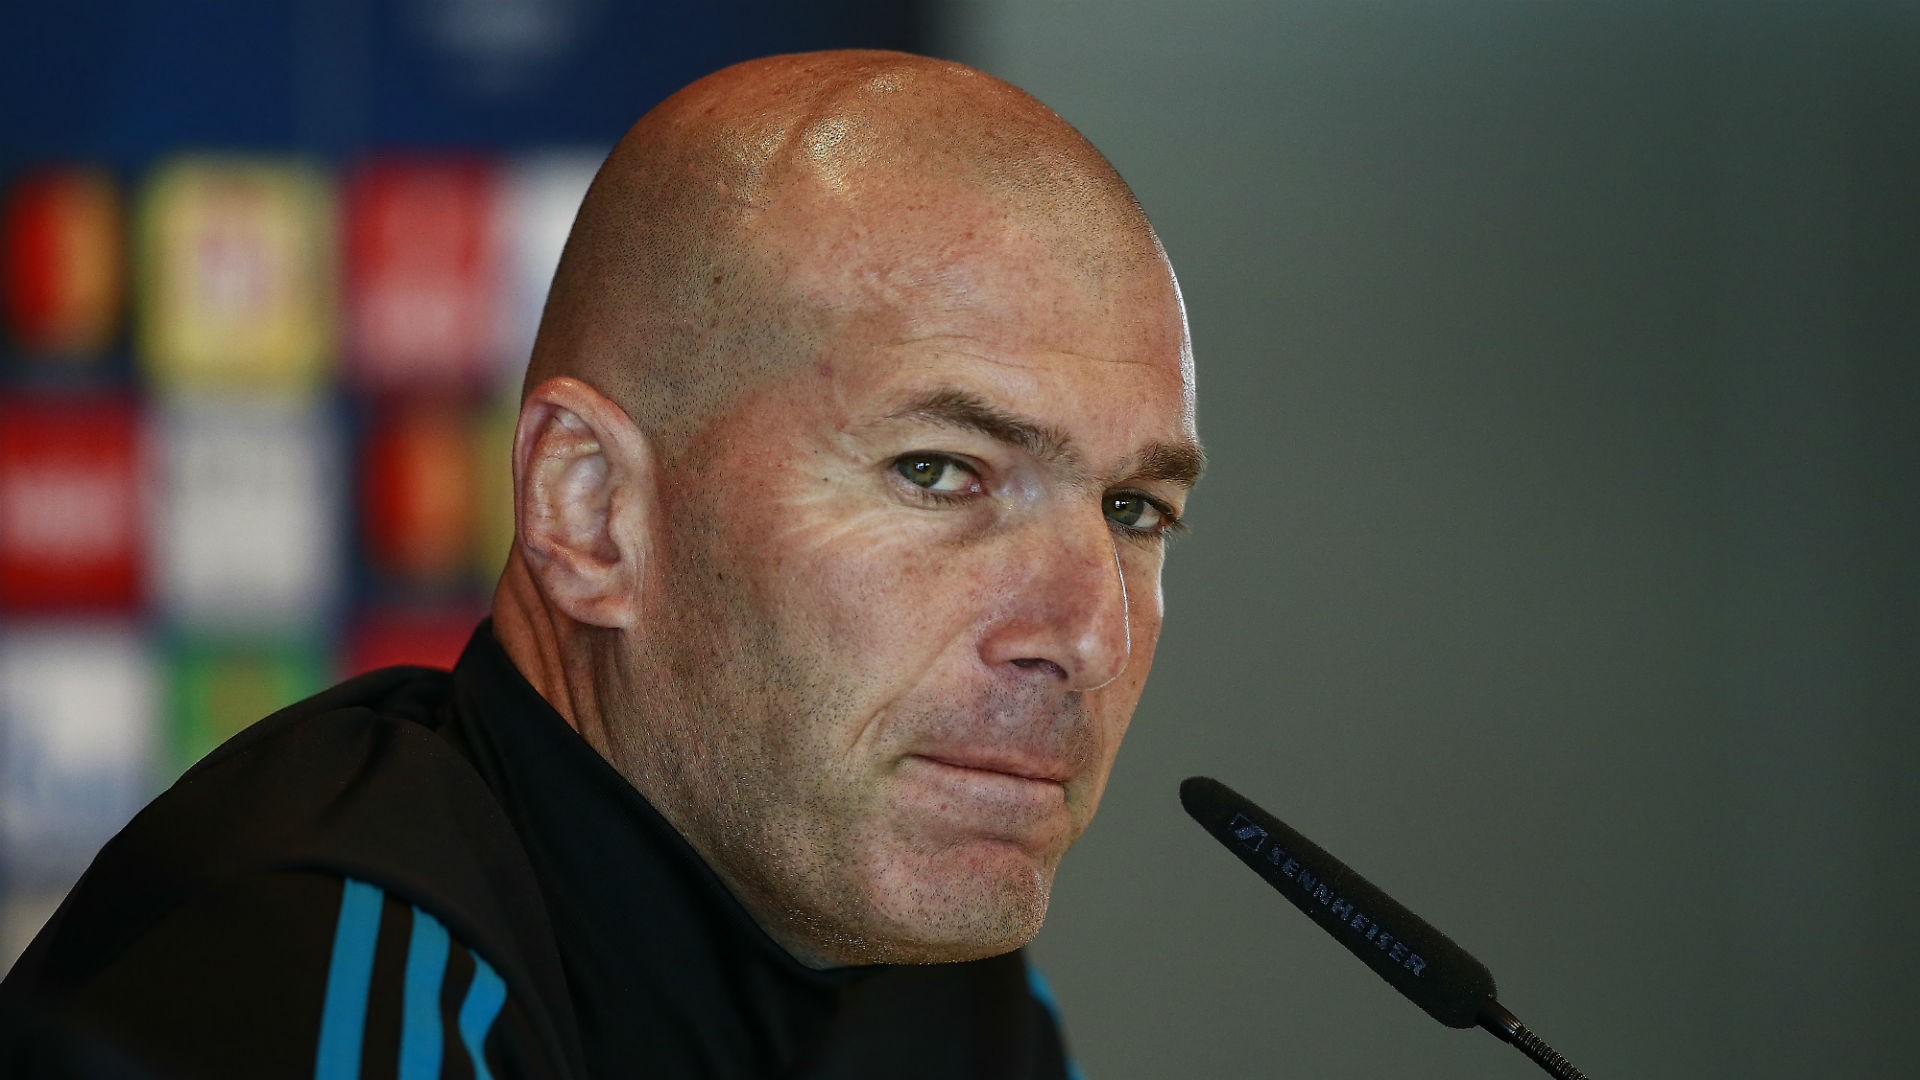 Champions League 2018: If Zidane fails to deliver trophy, could his job be in Real jeopardy?